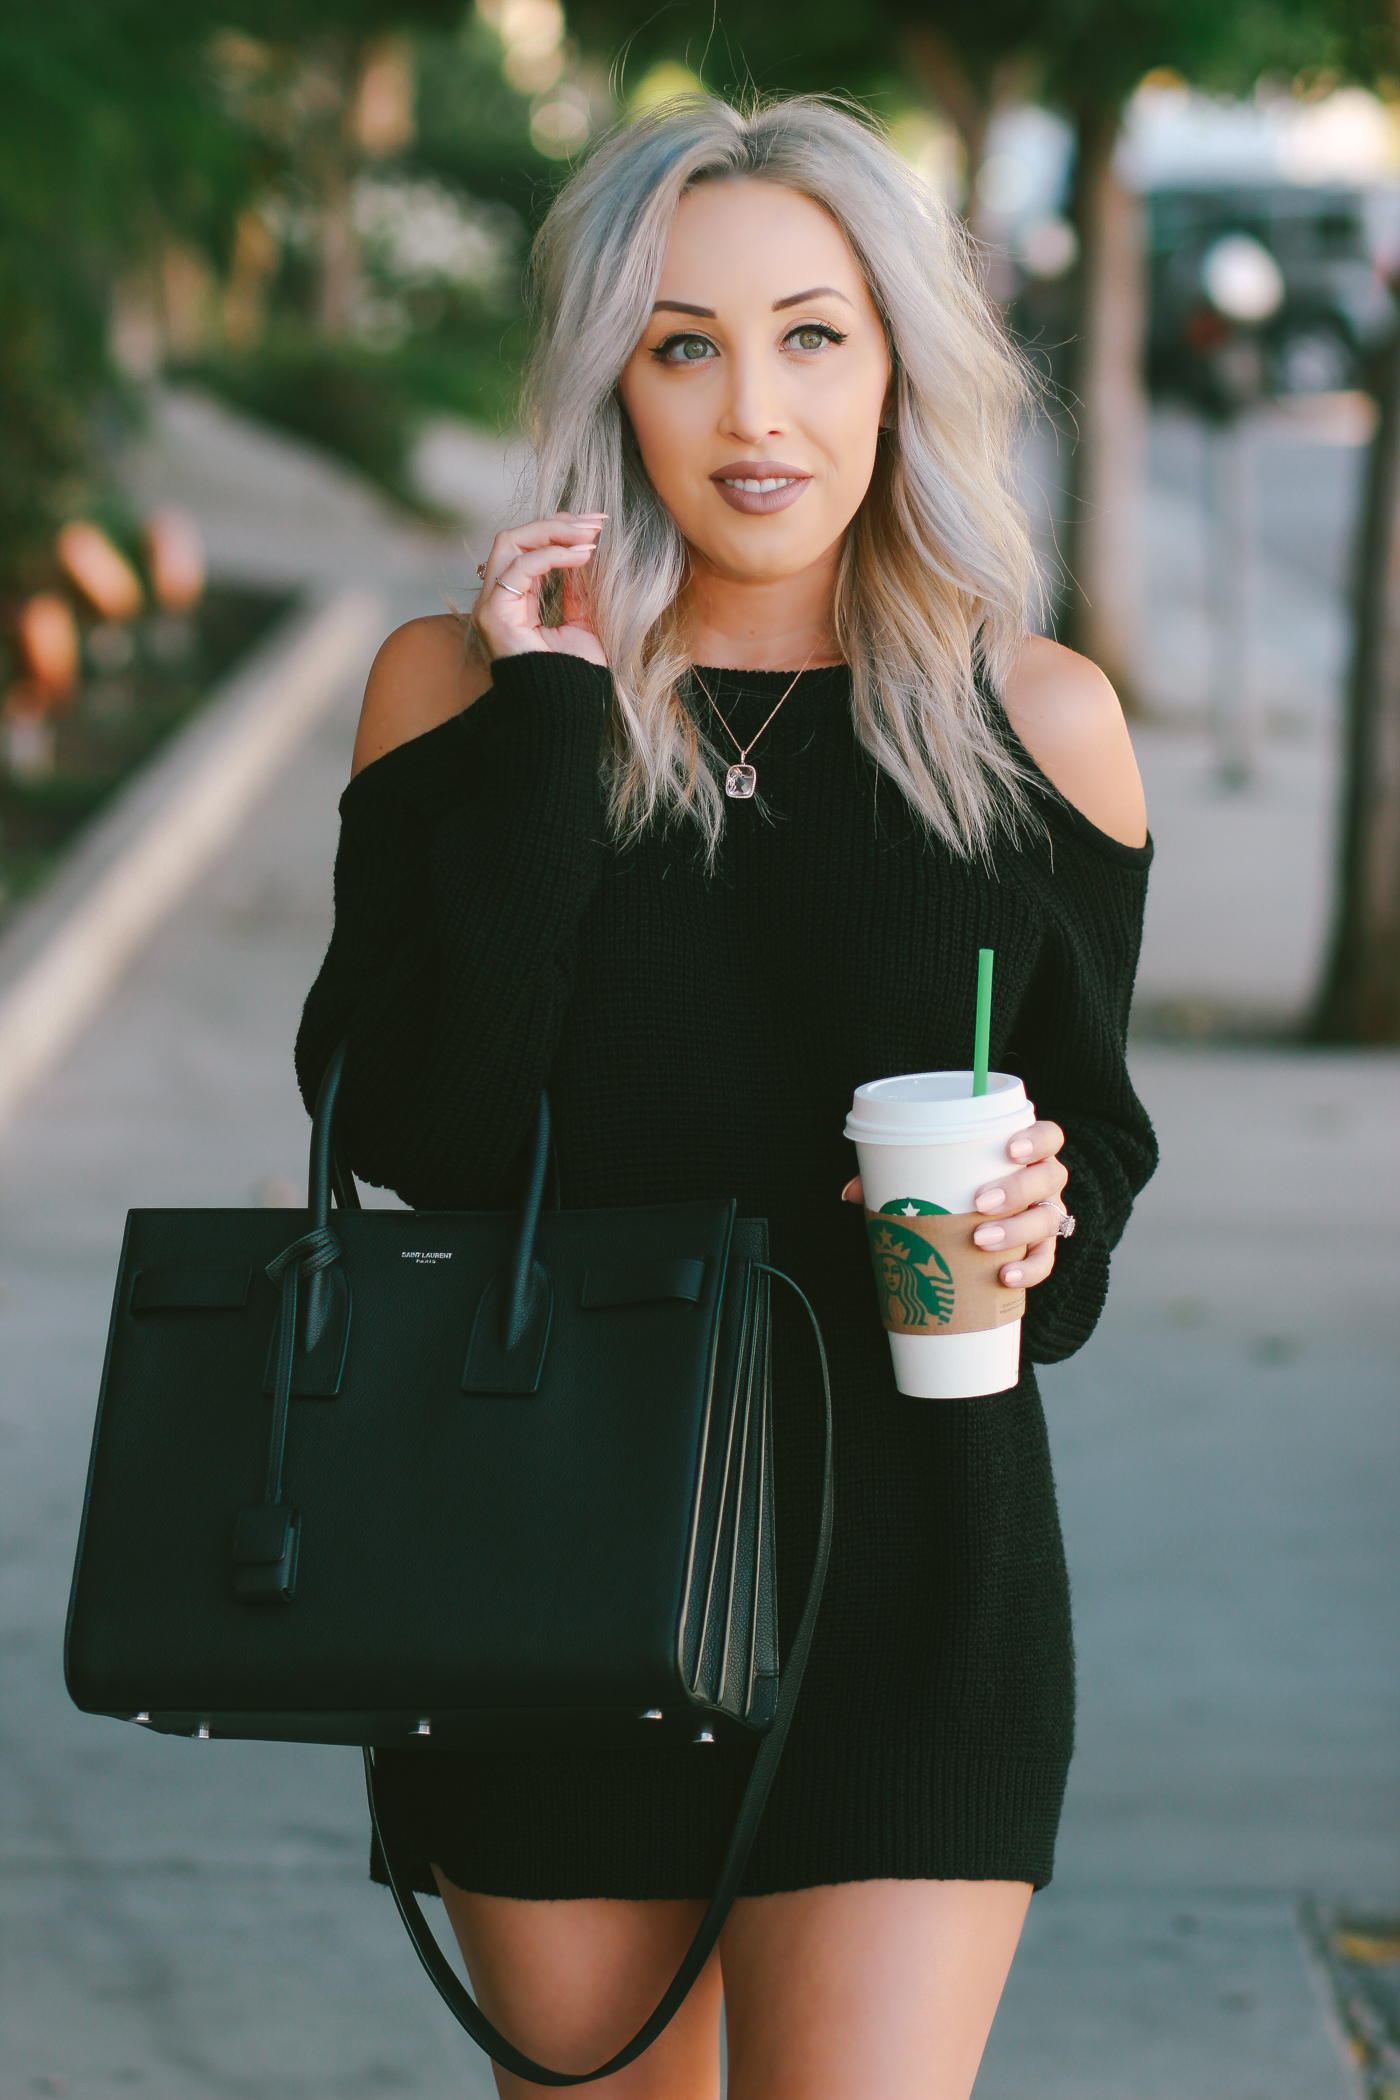 Blondie in the City | Coffee Stop | Cutoff Sweater Dress for Fall | Saint Laurent Sac De Jour Bag